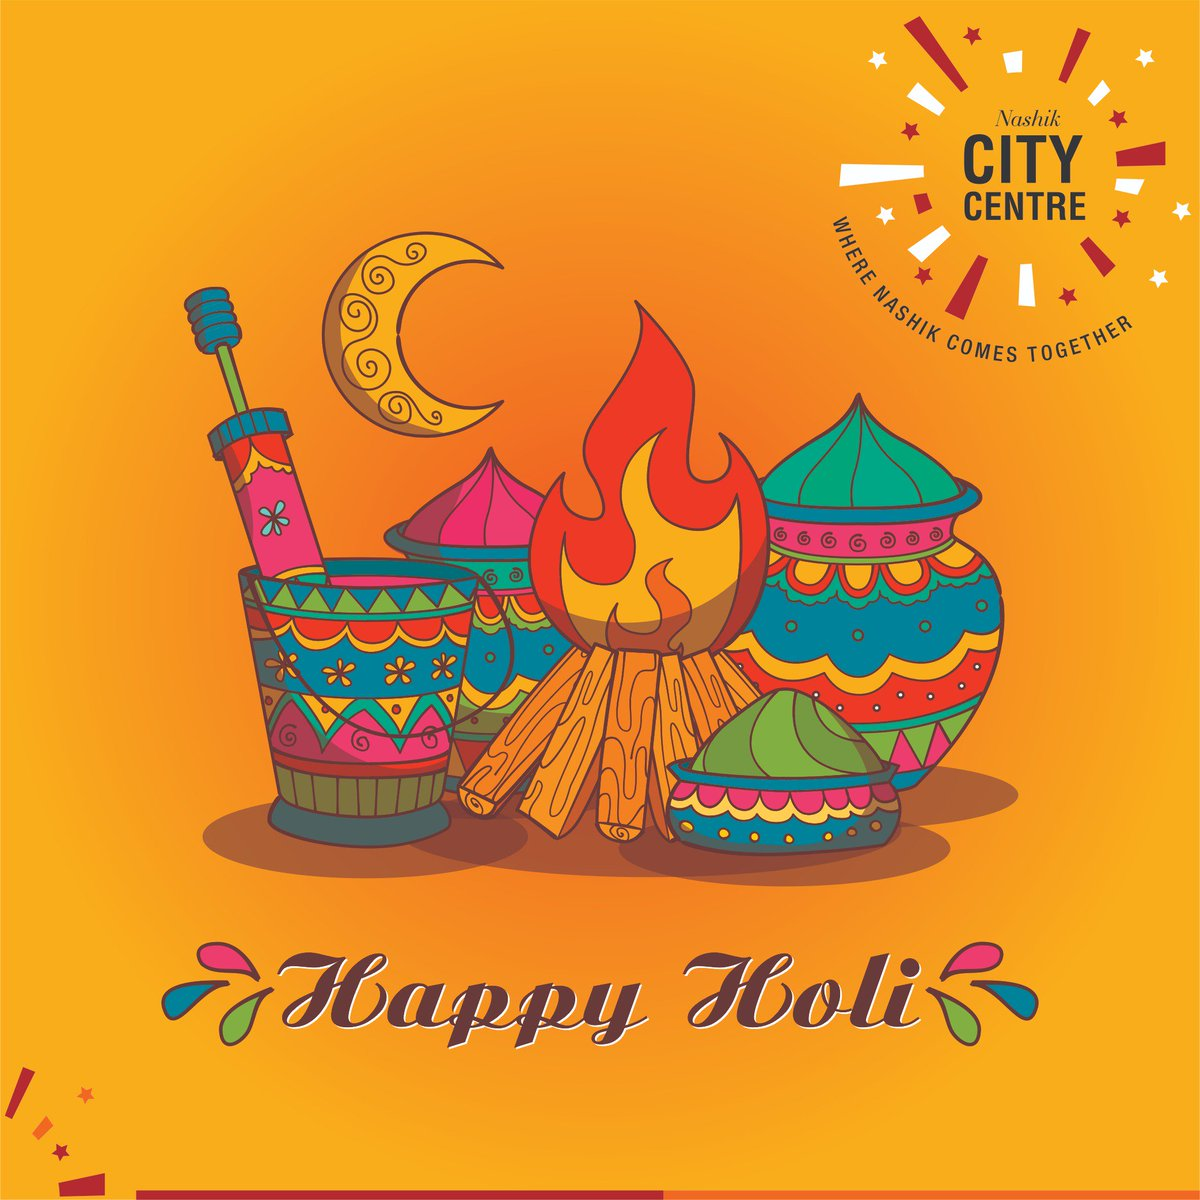 Nashikcitycentre On Twitter May The Fire Of Holi Purify Your Heart